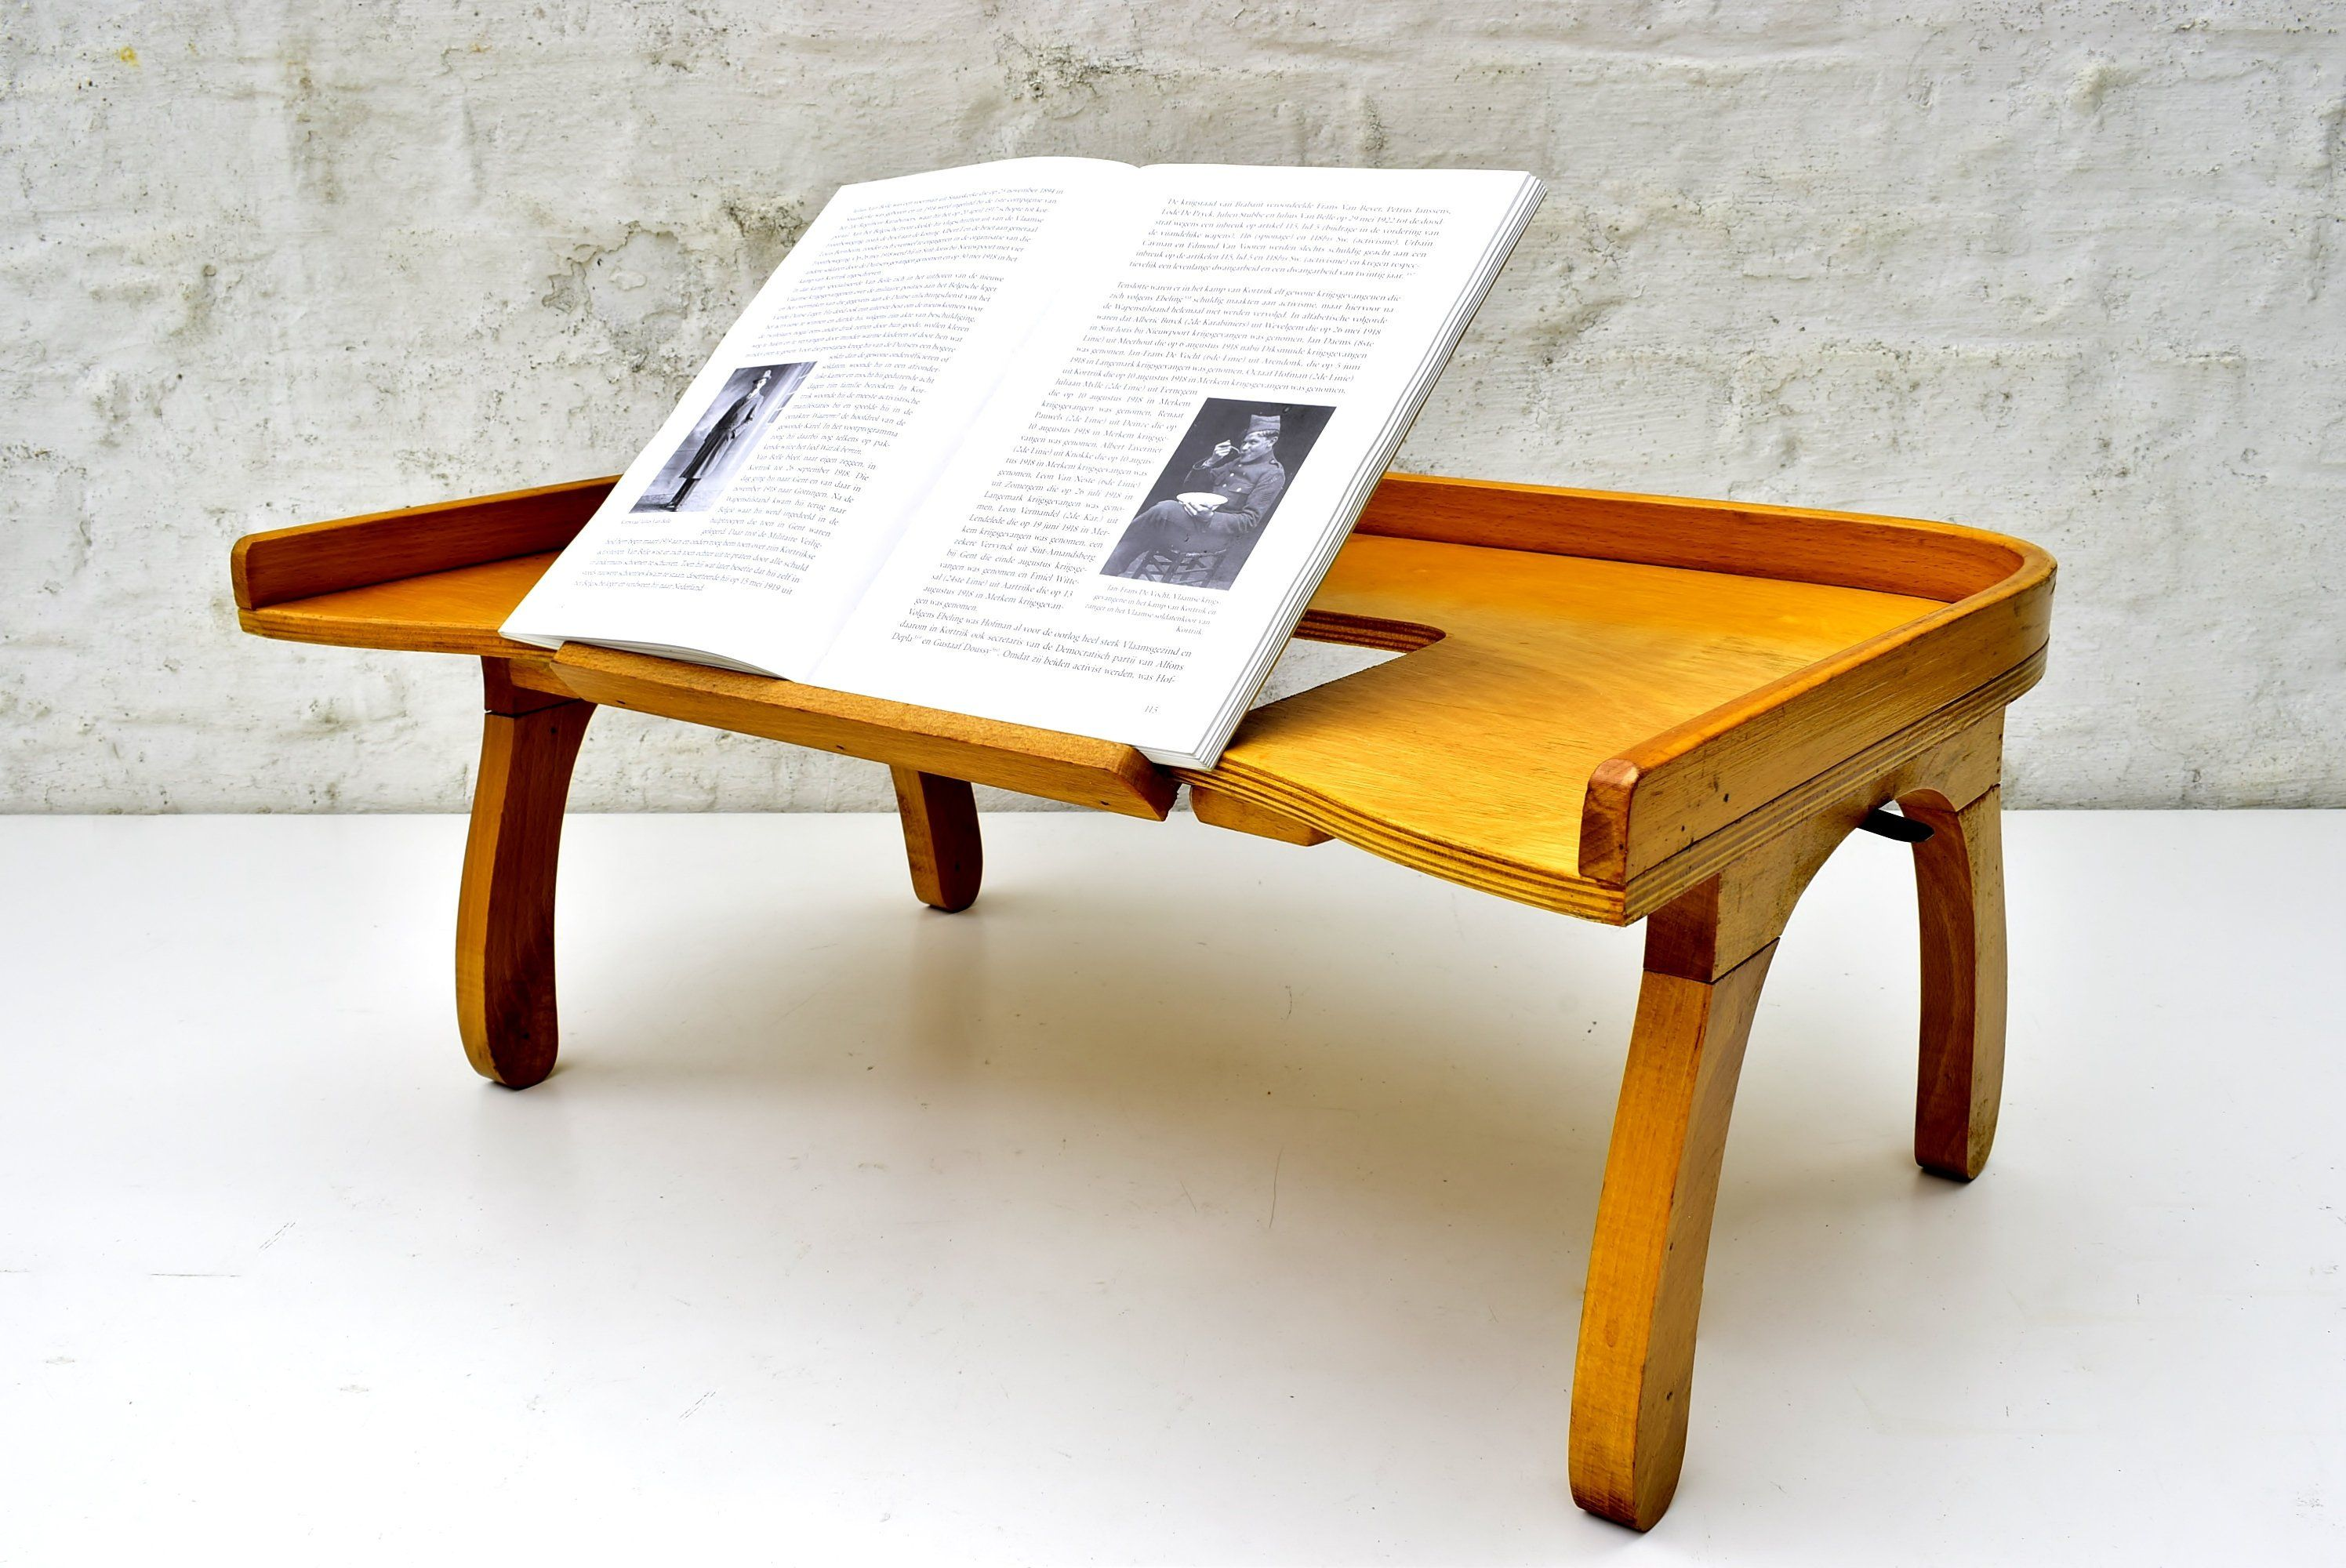 Vintage Bed Tray With Books Stand Retro Design Folding Breakfast Tray With Legs Fifties Large Reading Table In Beech Wood 1950s Decor Vintage Bed Bed Tray Book Stands